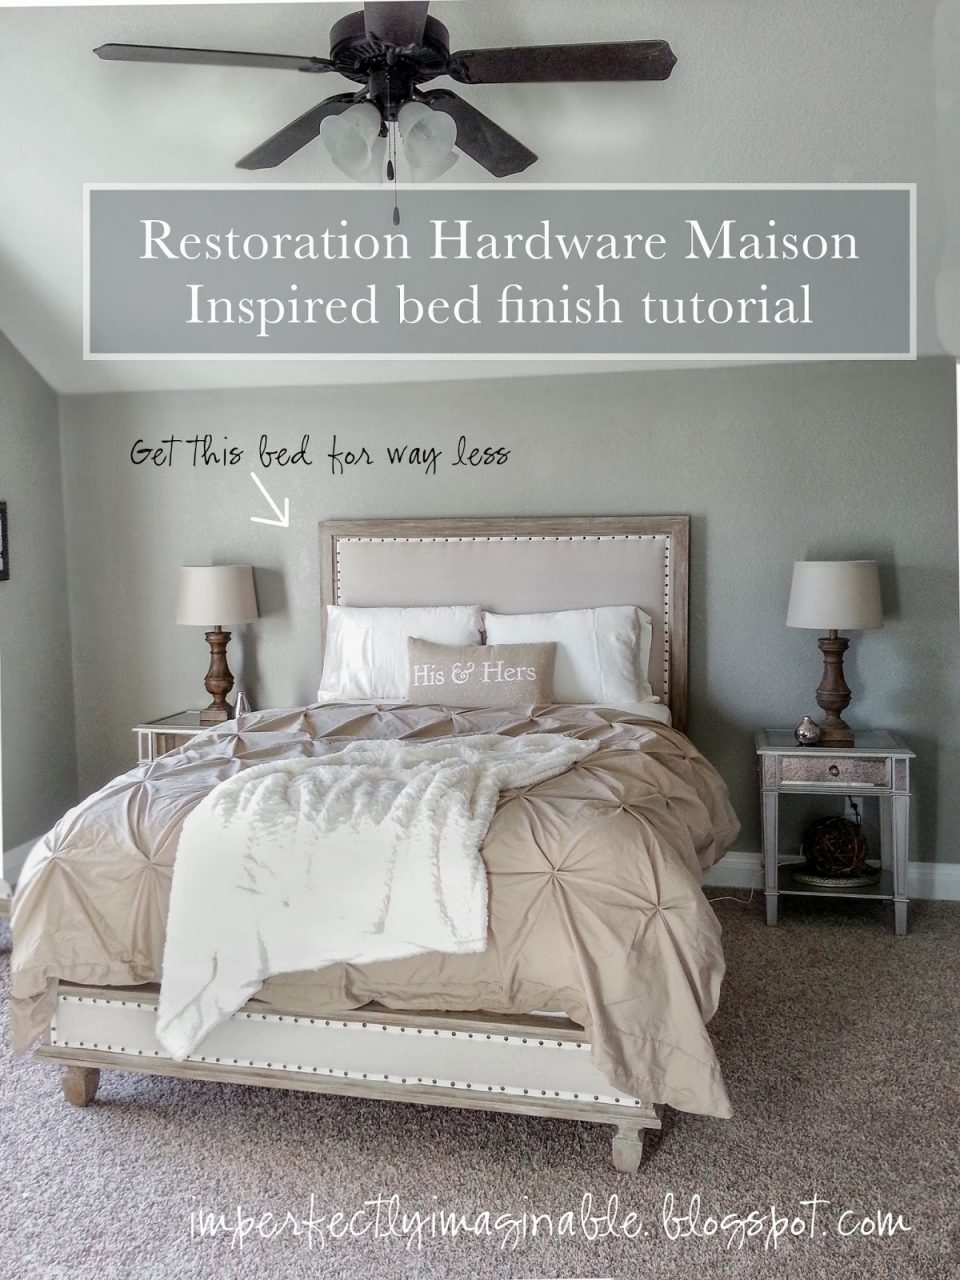 Imperfectly Imaginable Restoration Hardware Finish Tutorial For